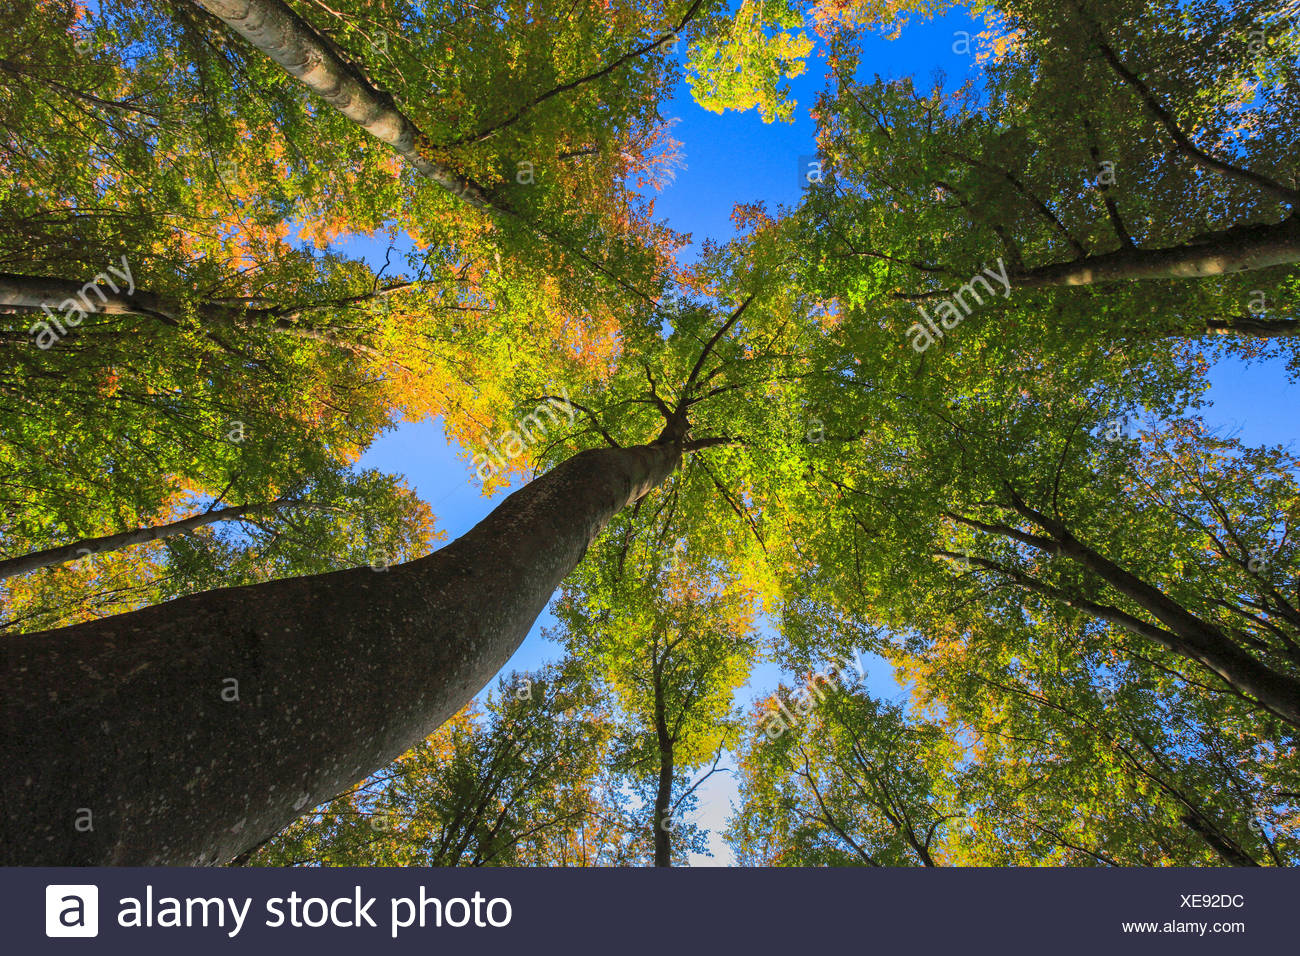 common beech (Fagus sylvatica), view from below in the crowns of a beech wood in autumn, Switzerland - Stock Image